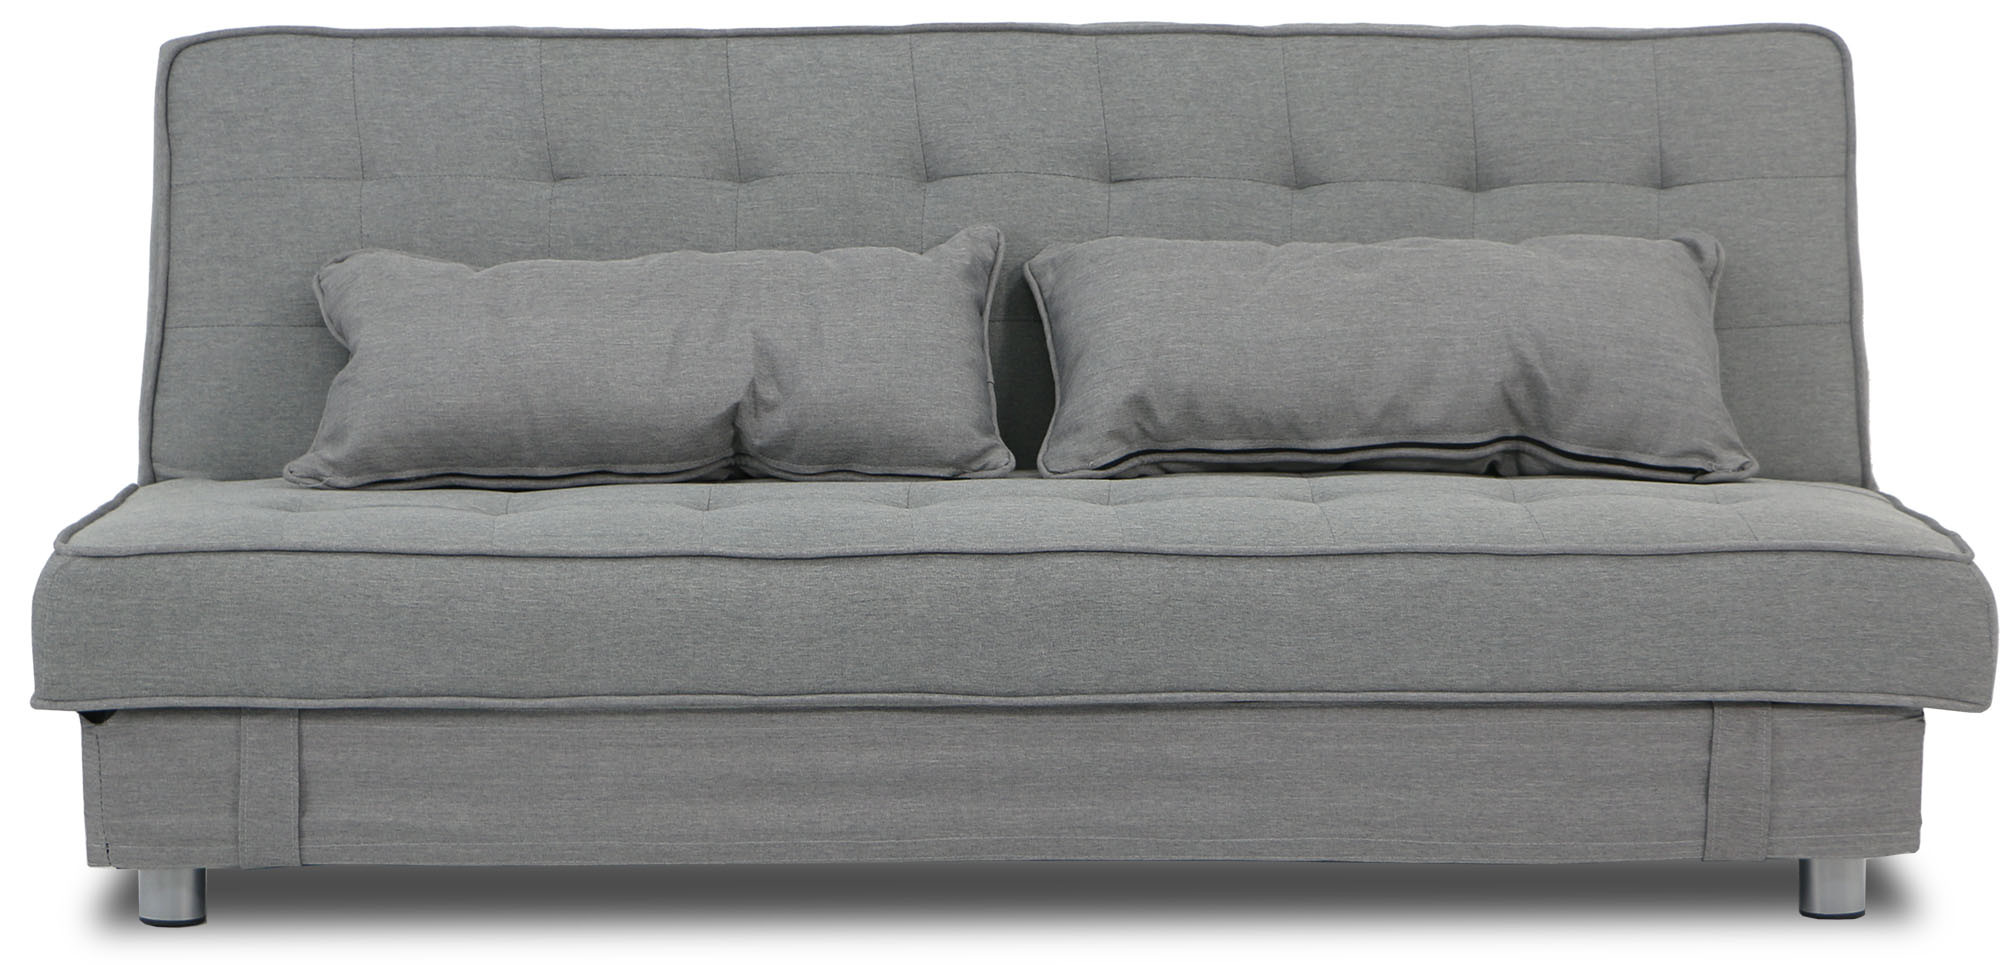 Steinar Storage Sofa Bed Grey